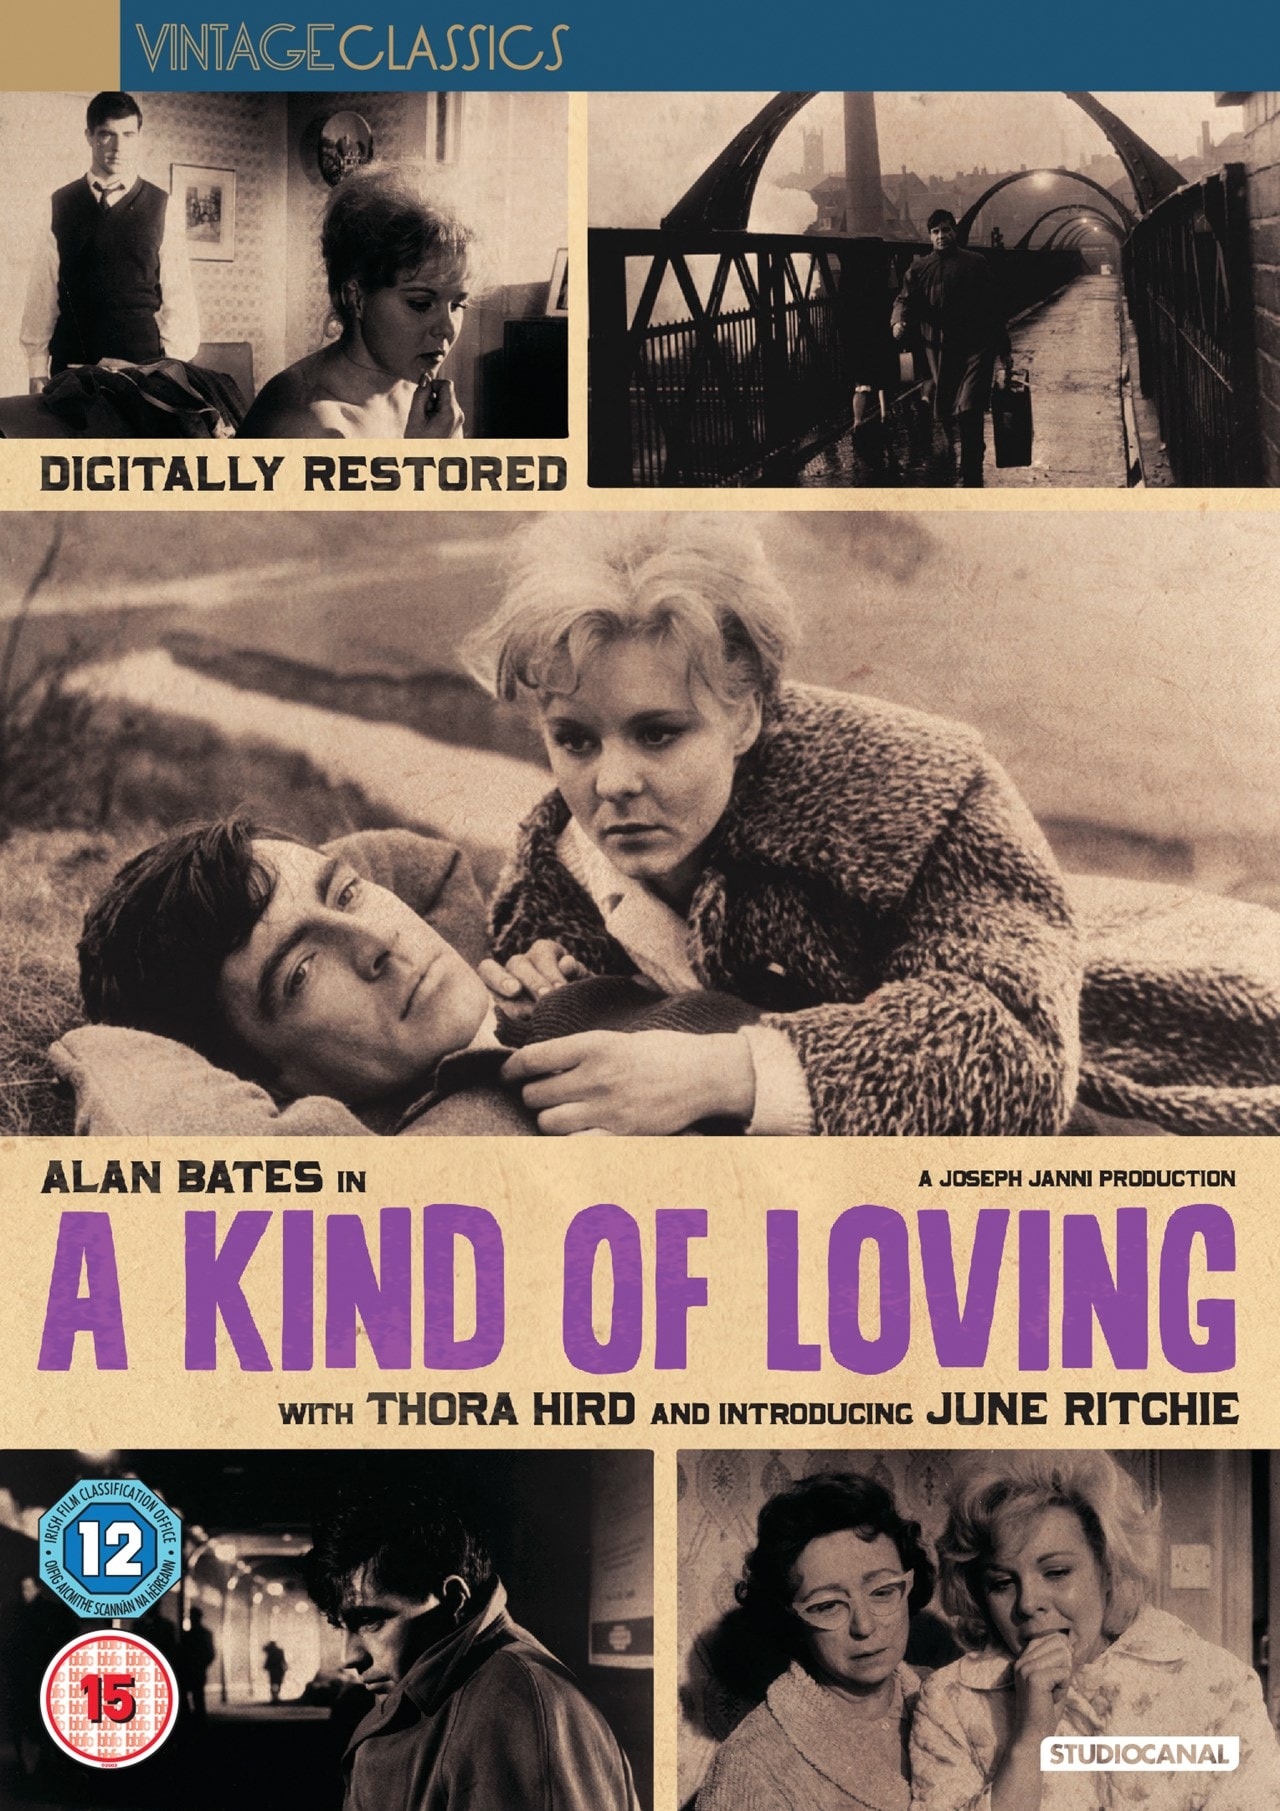 A Kind of Loving - 1